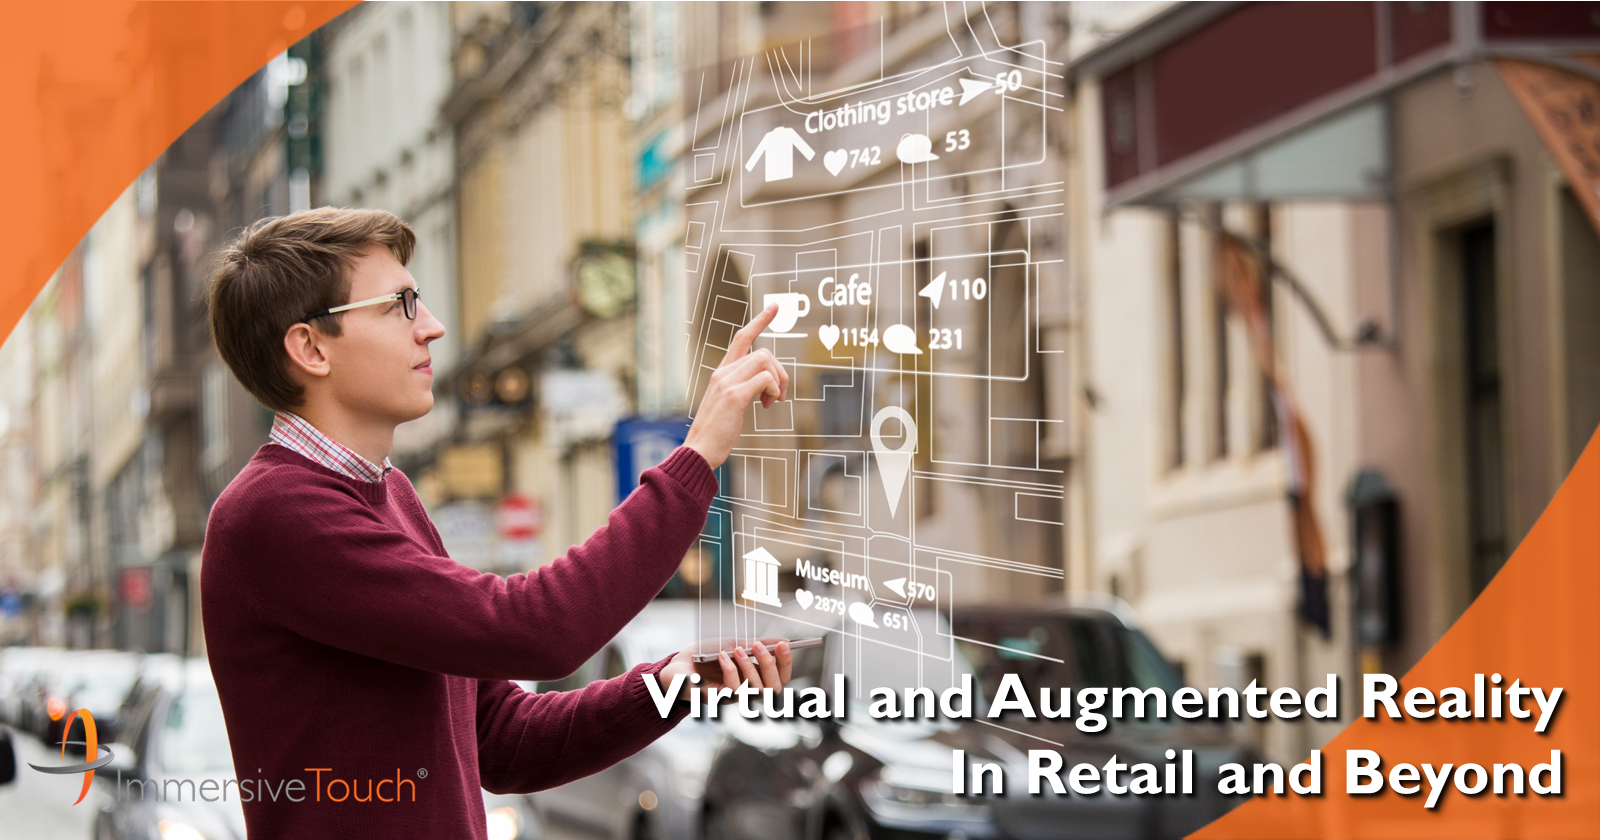 ar-vr-retail-beyond-immersivetouch-header.png